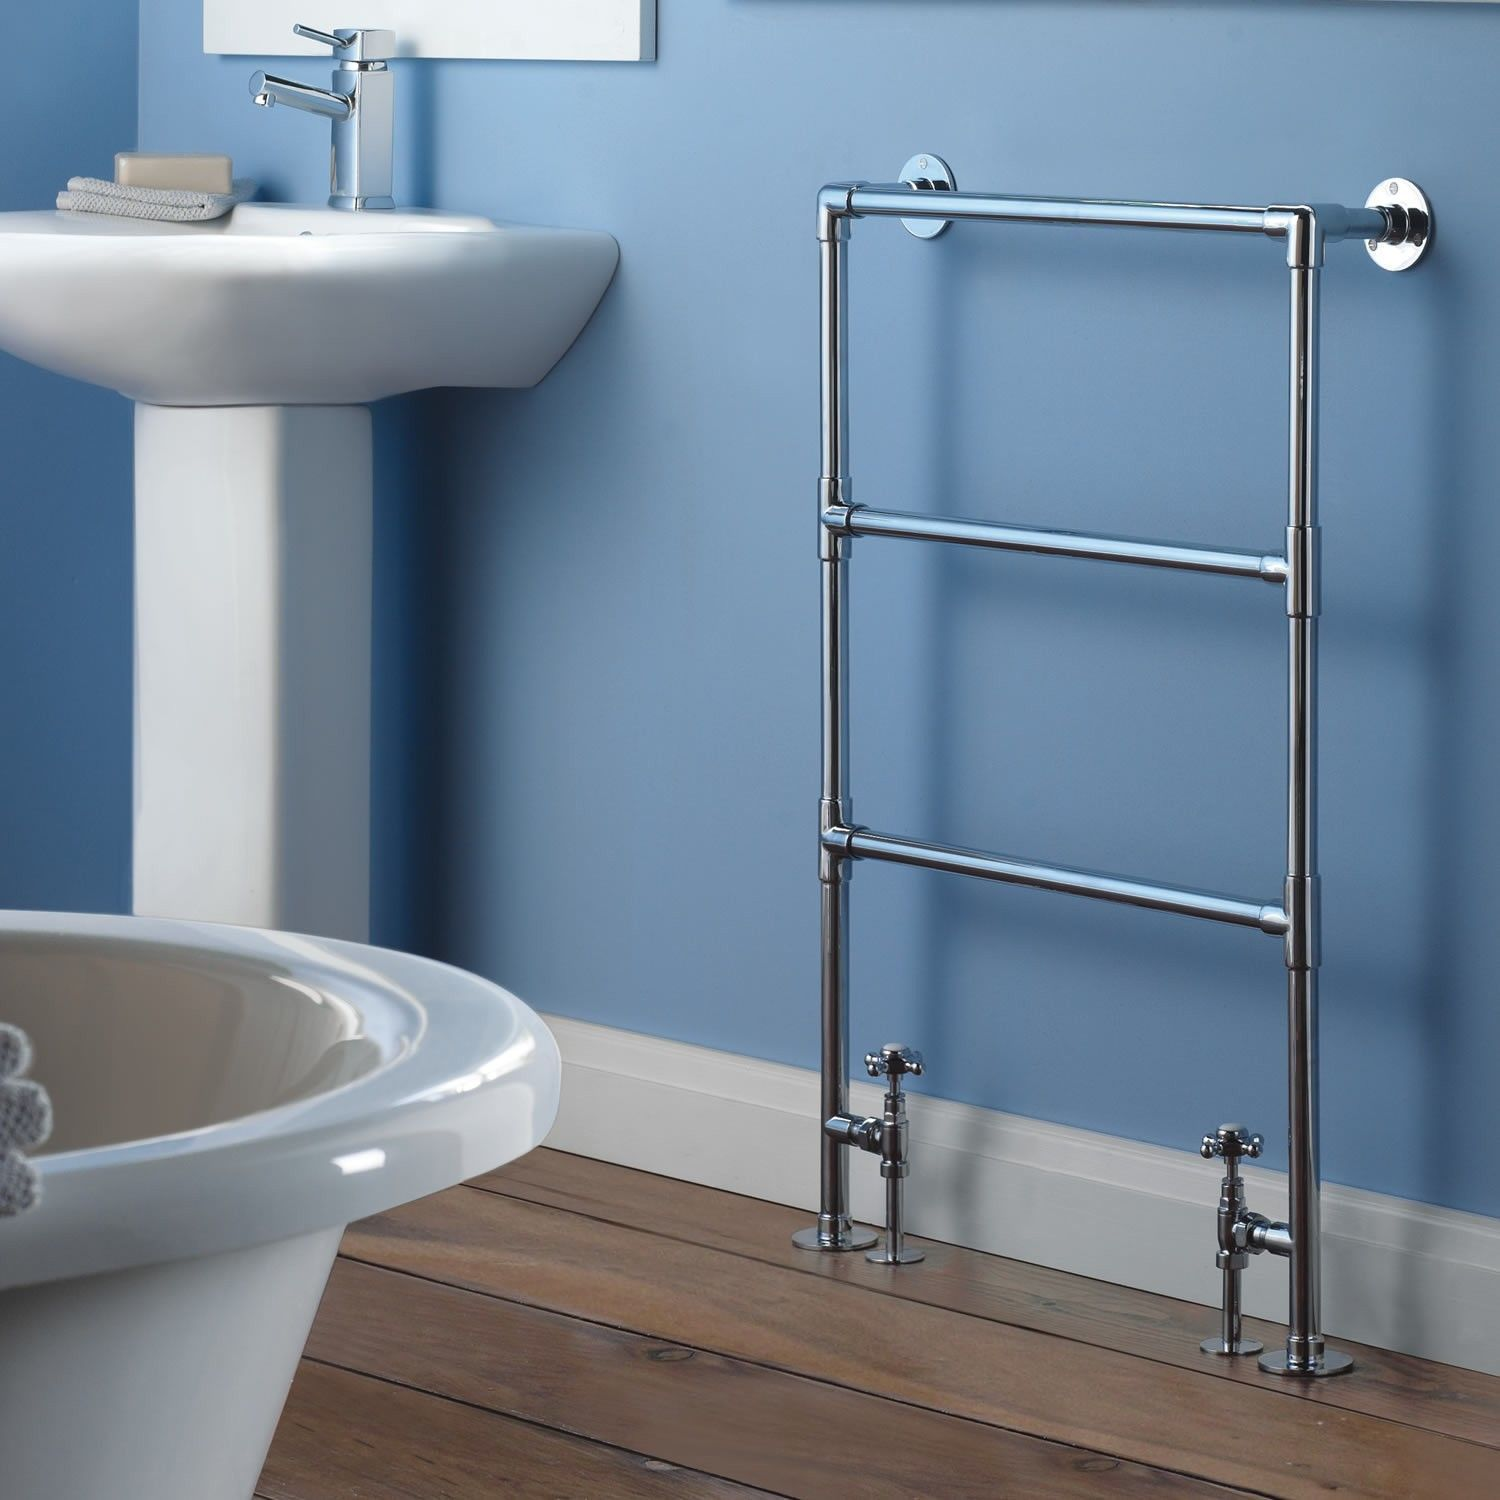 This heated towel rail will give your bathroom a traditional touch ...